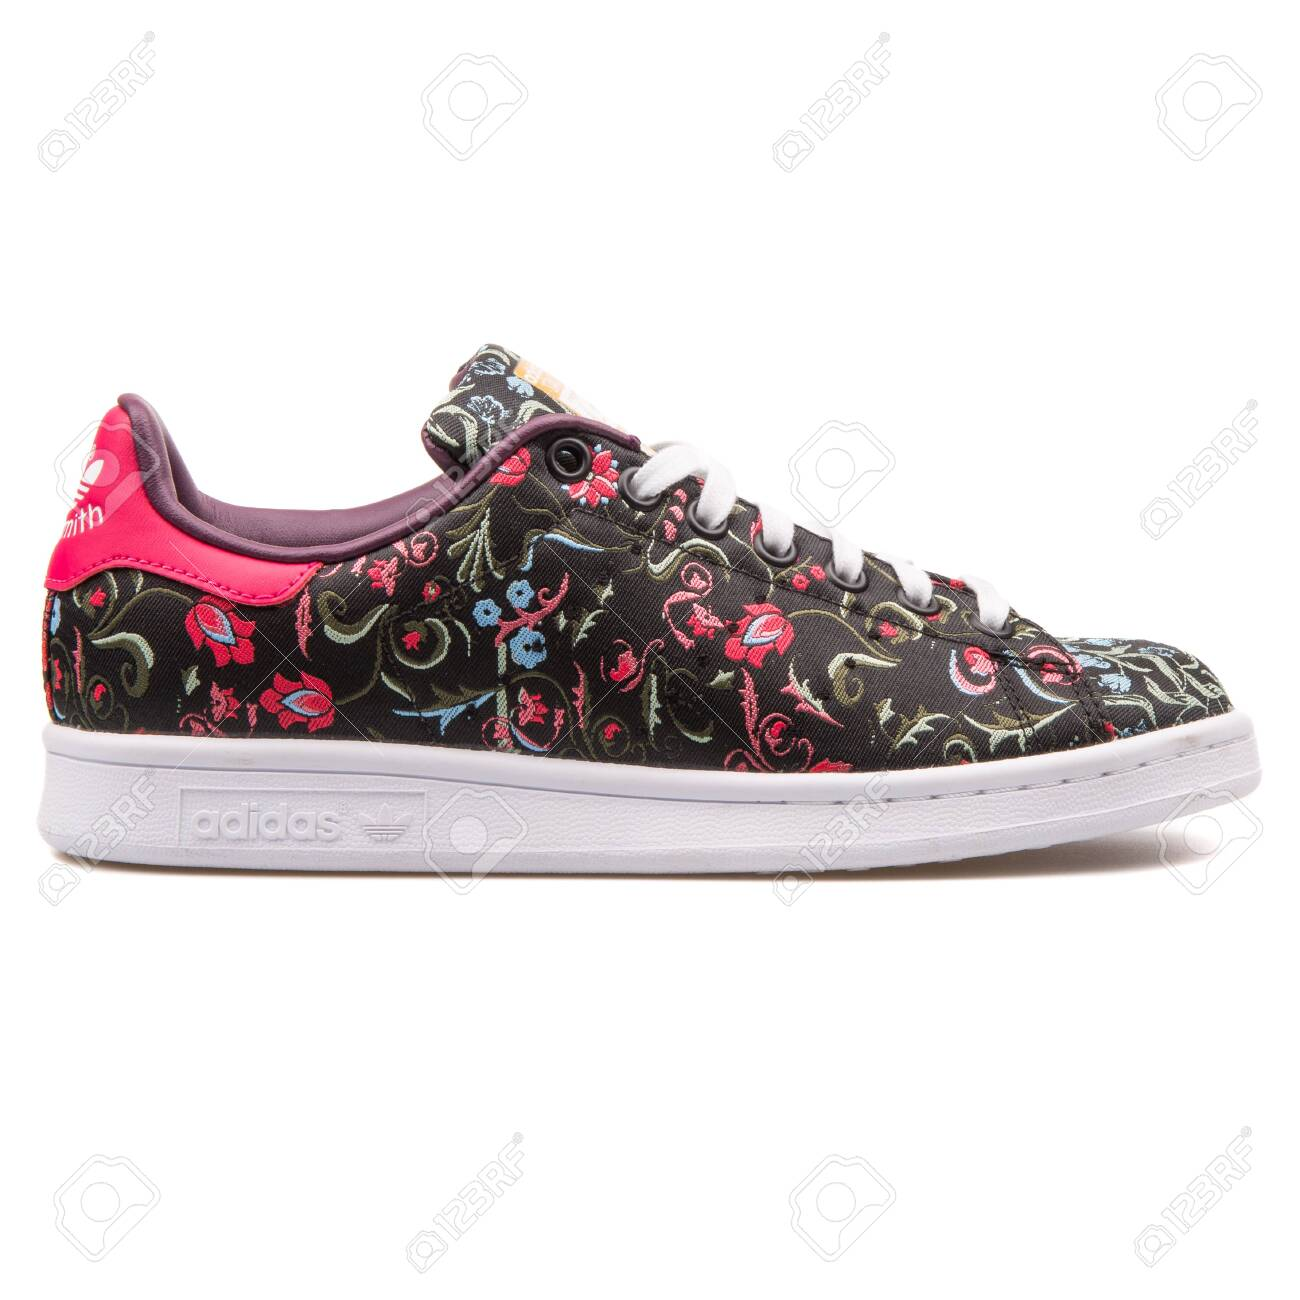 low priced 203bf cf49d VIENNA, AUSTRIA - AUGUST 25, 2017: Adidas Stan Smith floral black..